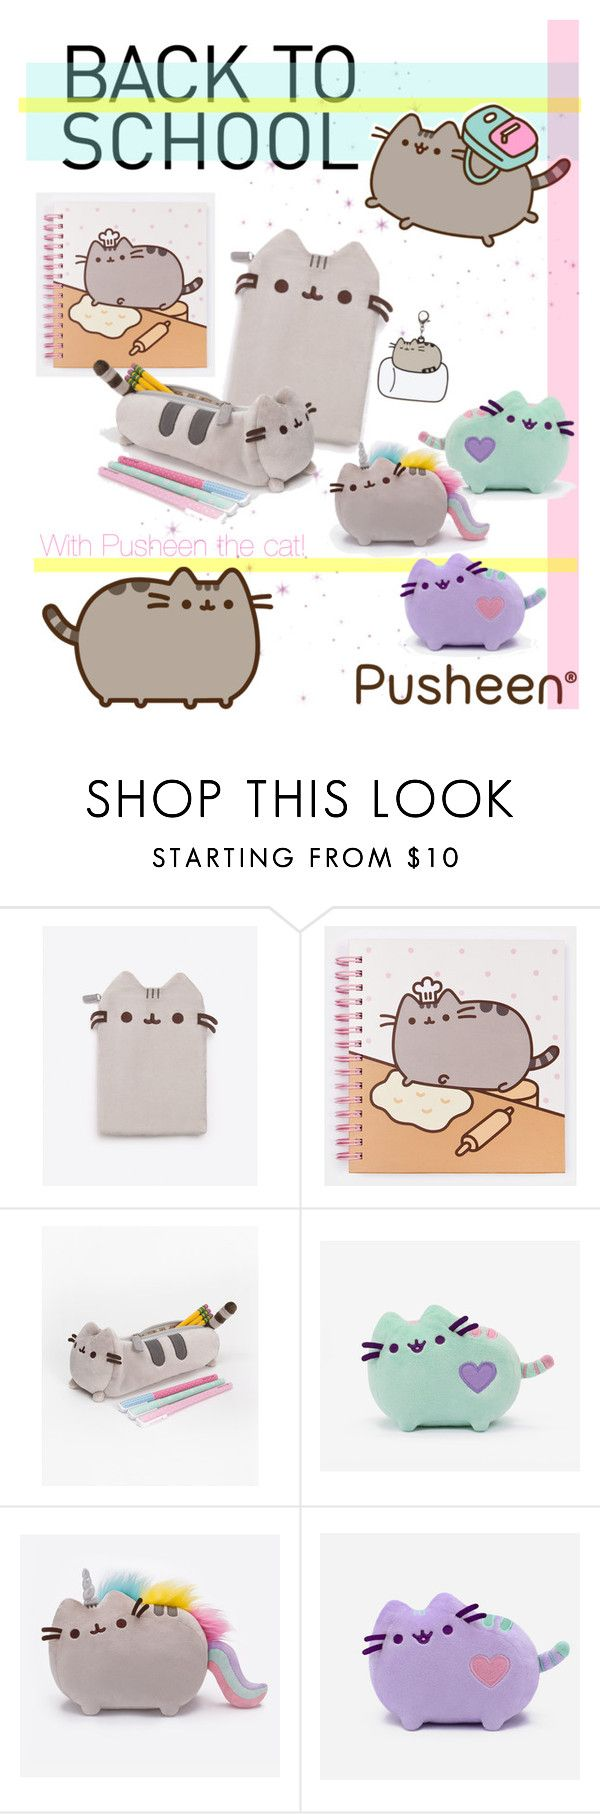 """""""#PVxPusheen"""" by gabyidc ❤ liked on Polyvore featuring Pusheen, contestentry and PVxPusheen"""